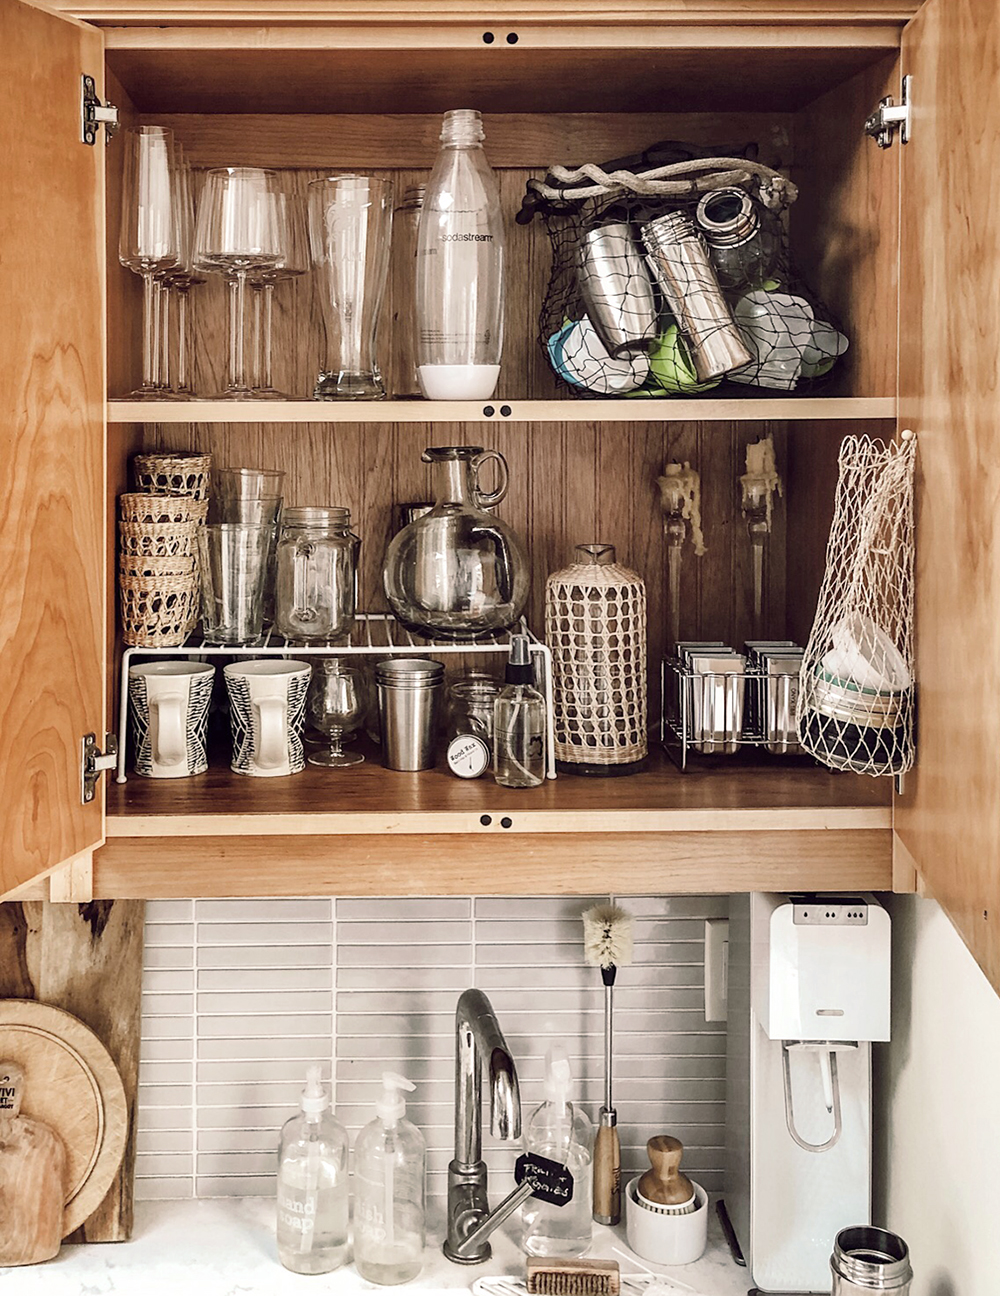 A Look Inside Kitchen Storage The Tiny Canal Cottage